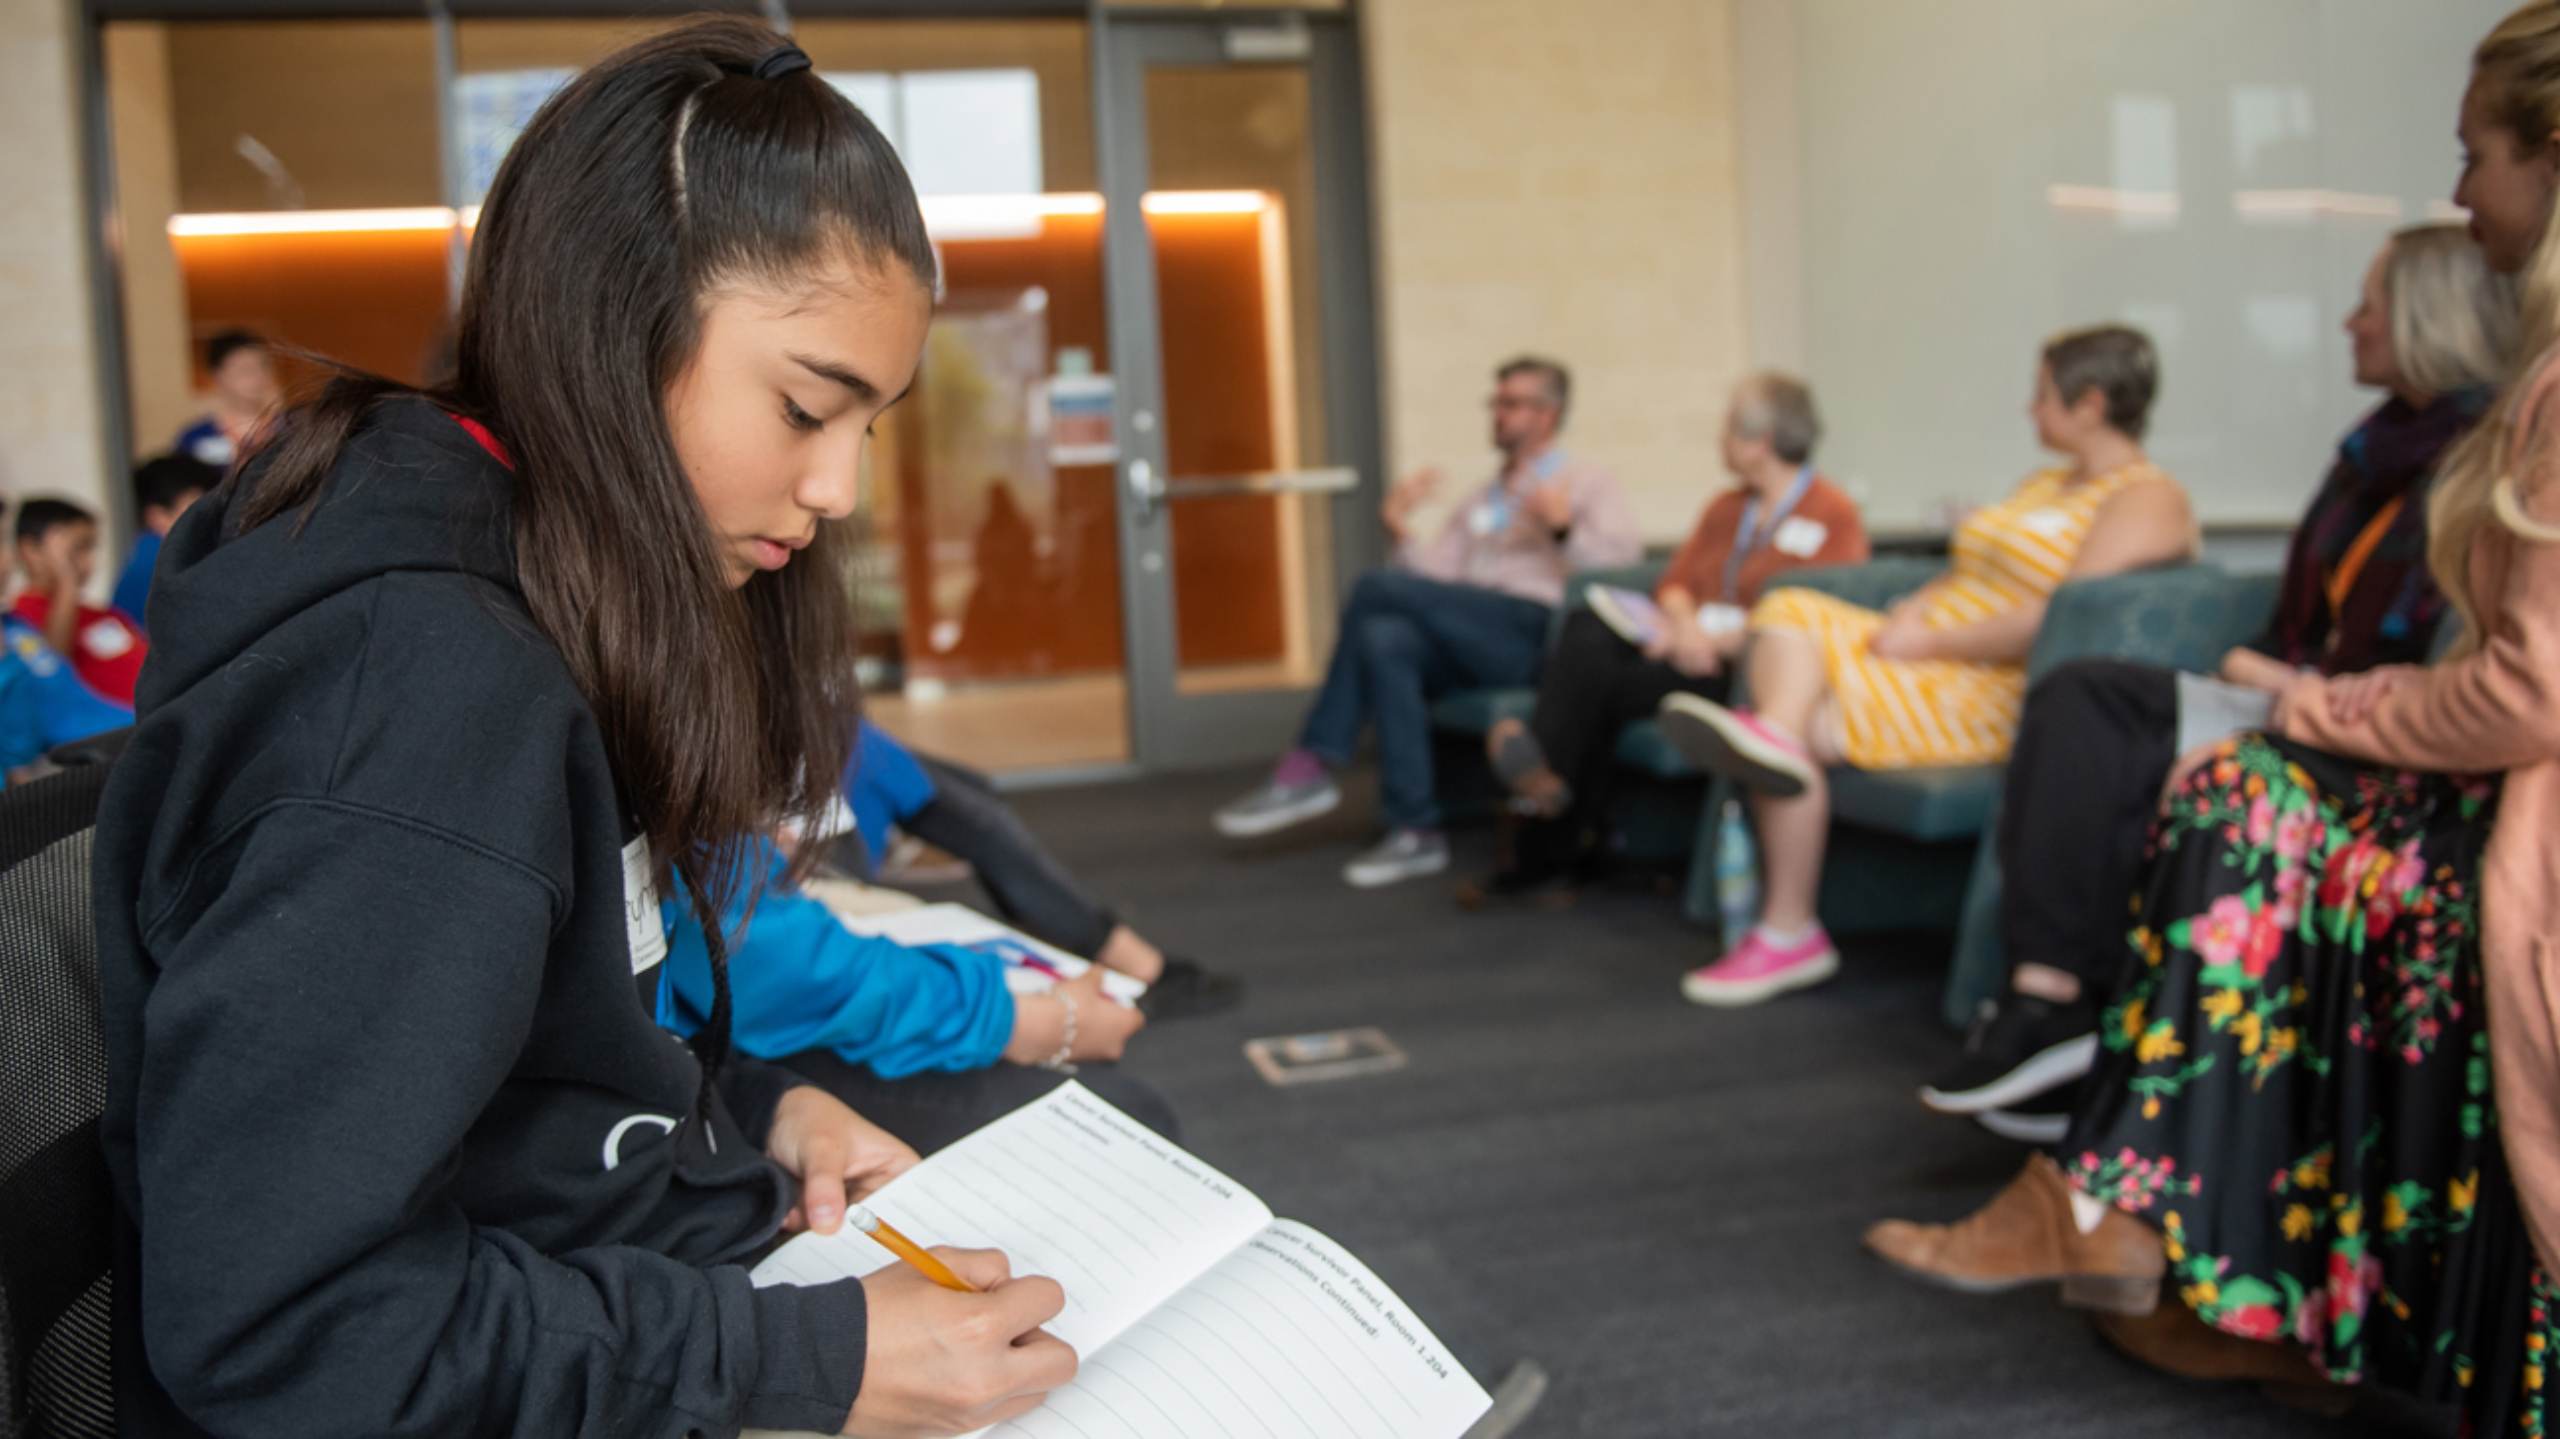 A middle school girl sitting in a chair taking notes during a panel discussion.